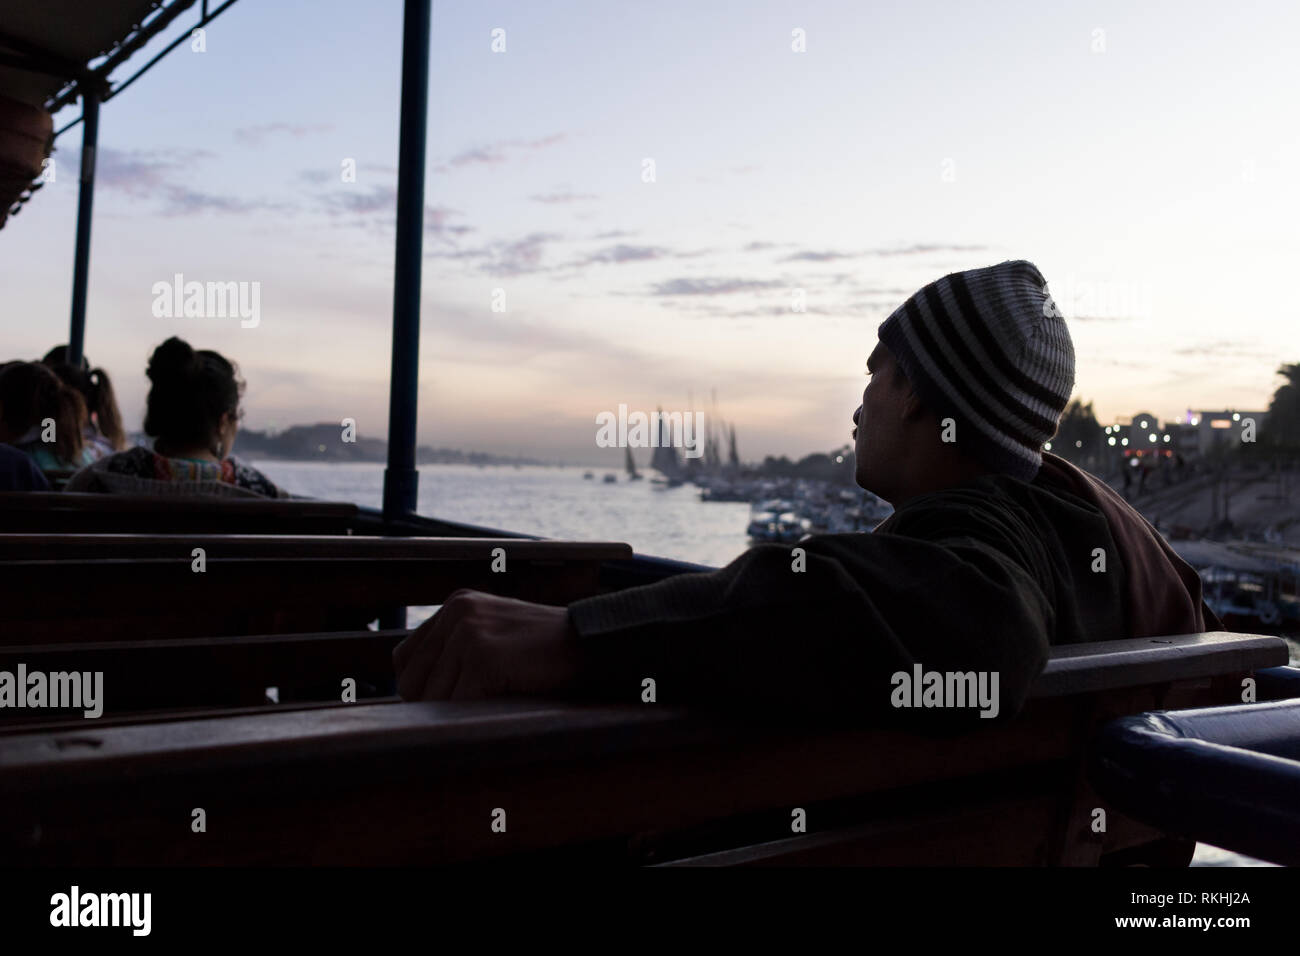 A man sits on the Luxor, Egypt, public ferry that crosses the Nile river - Stock Image